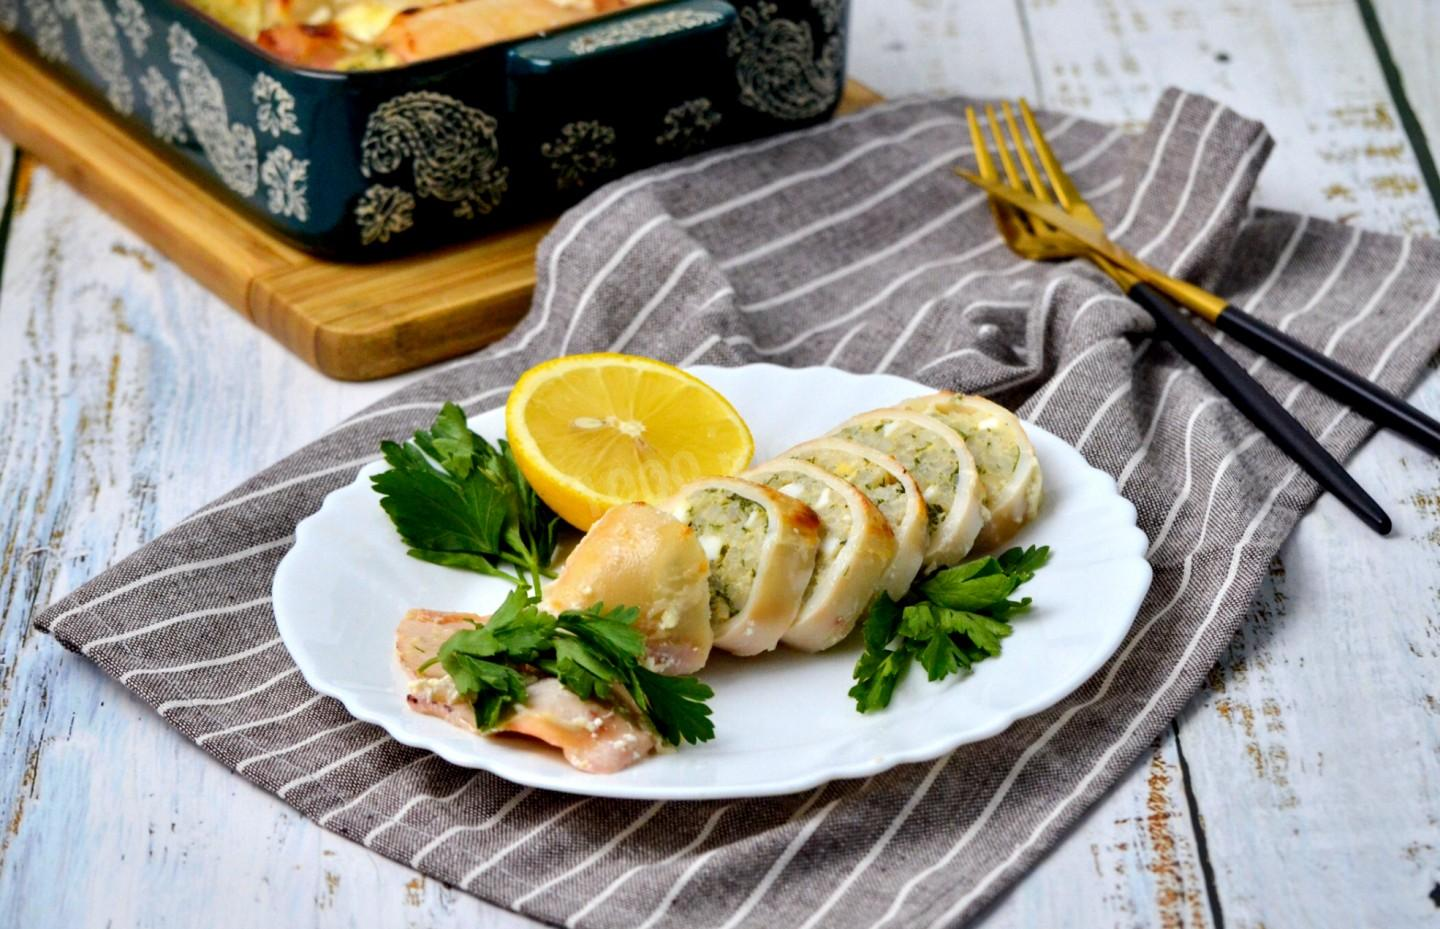 SQUID STUFFED WITH RICE IN THE OVEN